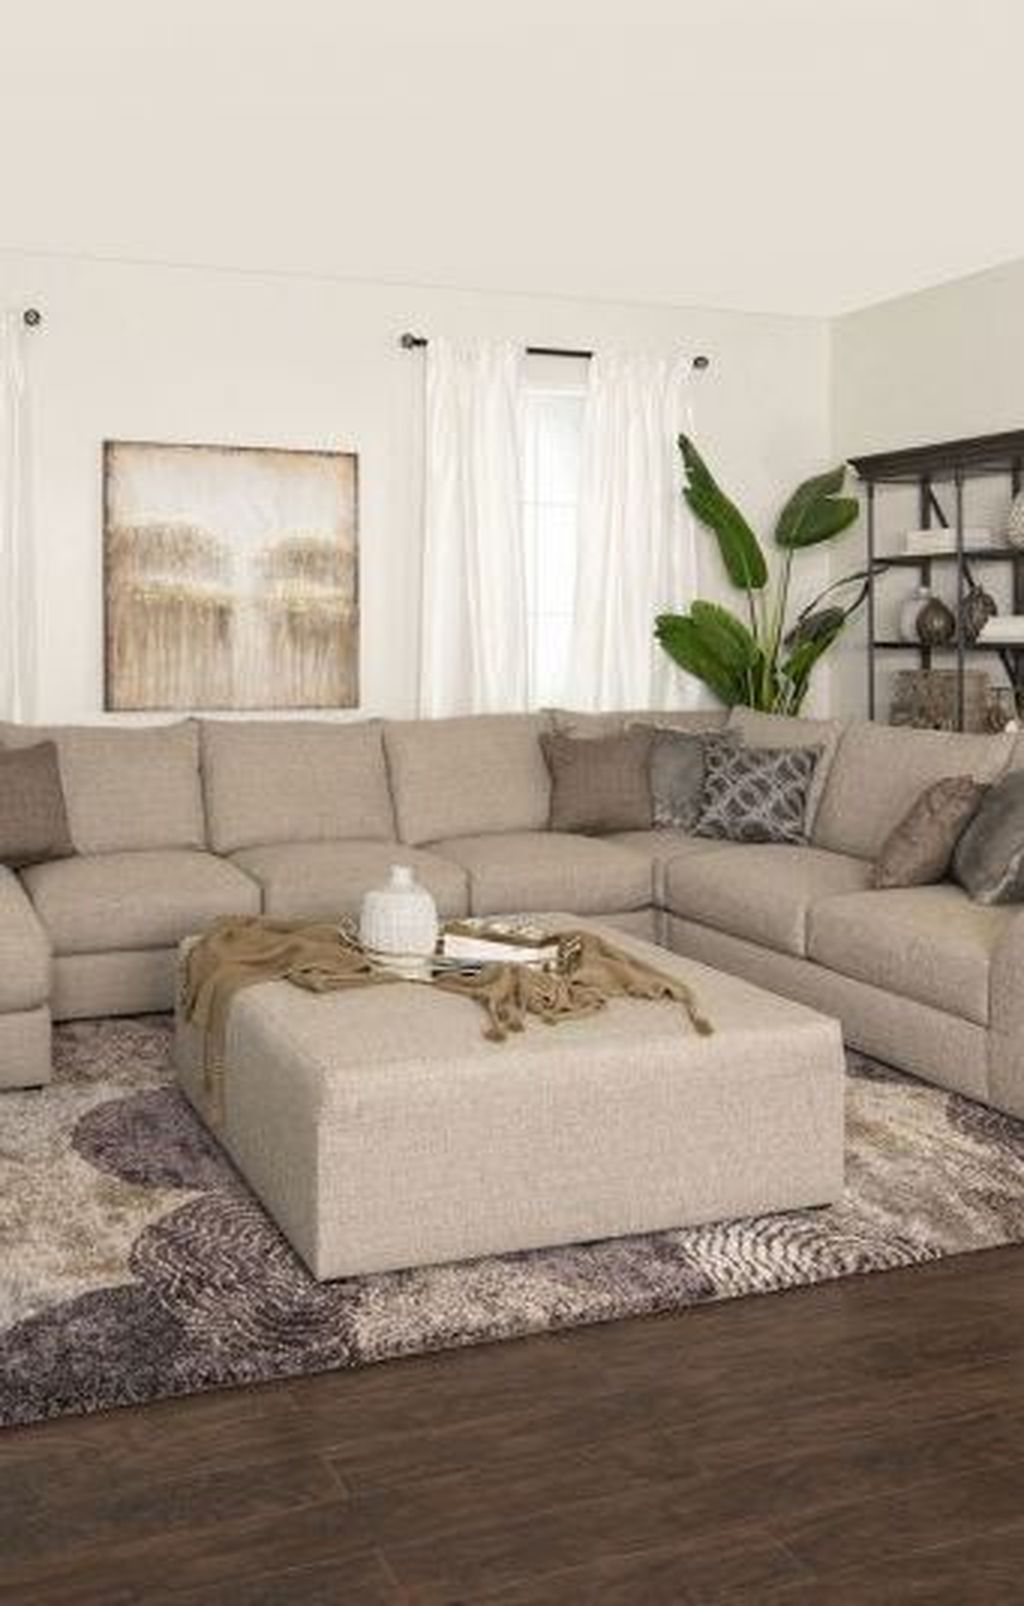 Graceful Living Room Design Ideas That You Need To Try 15